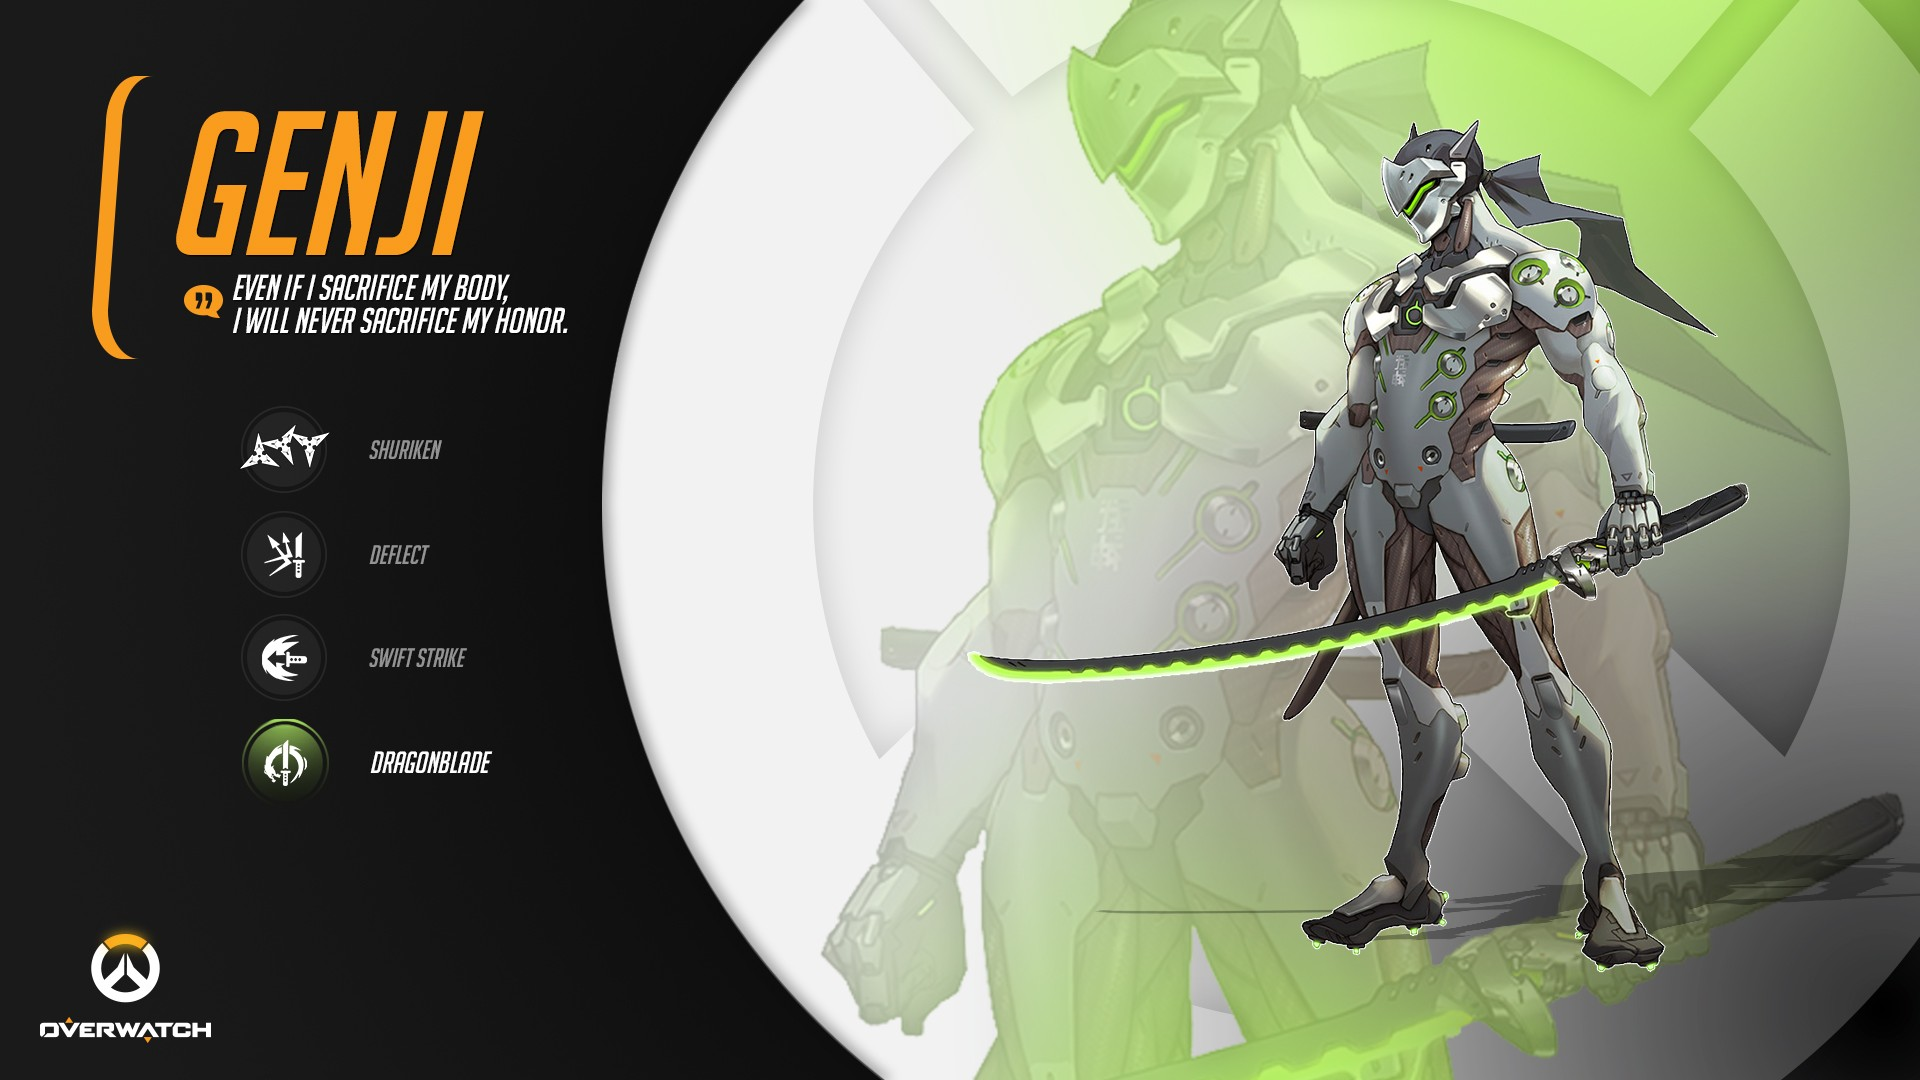 Genji Overwatch Wallpaper Download Free Beautiful Full Hd